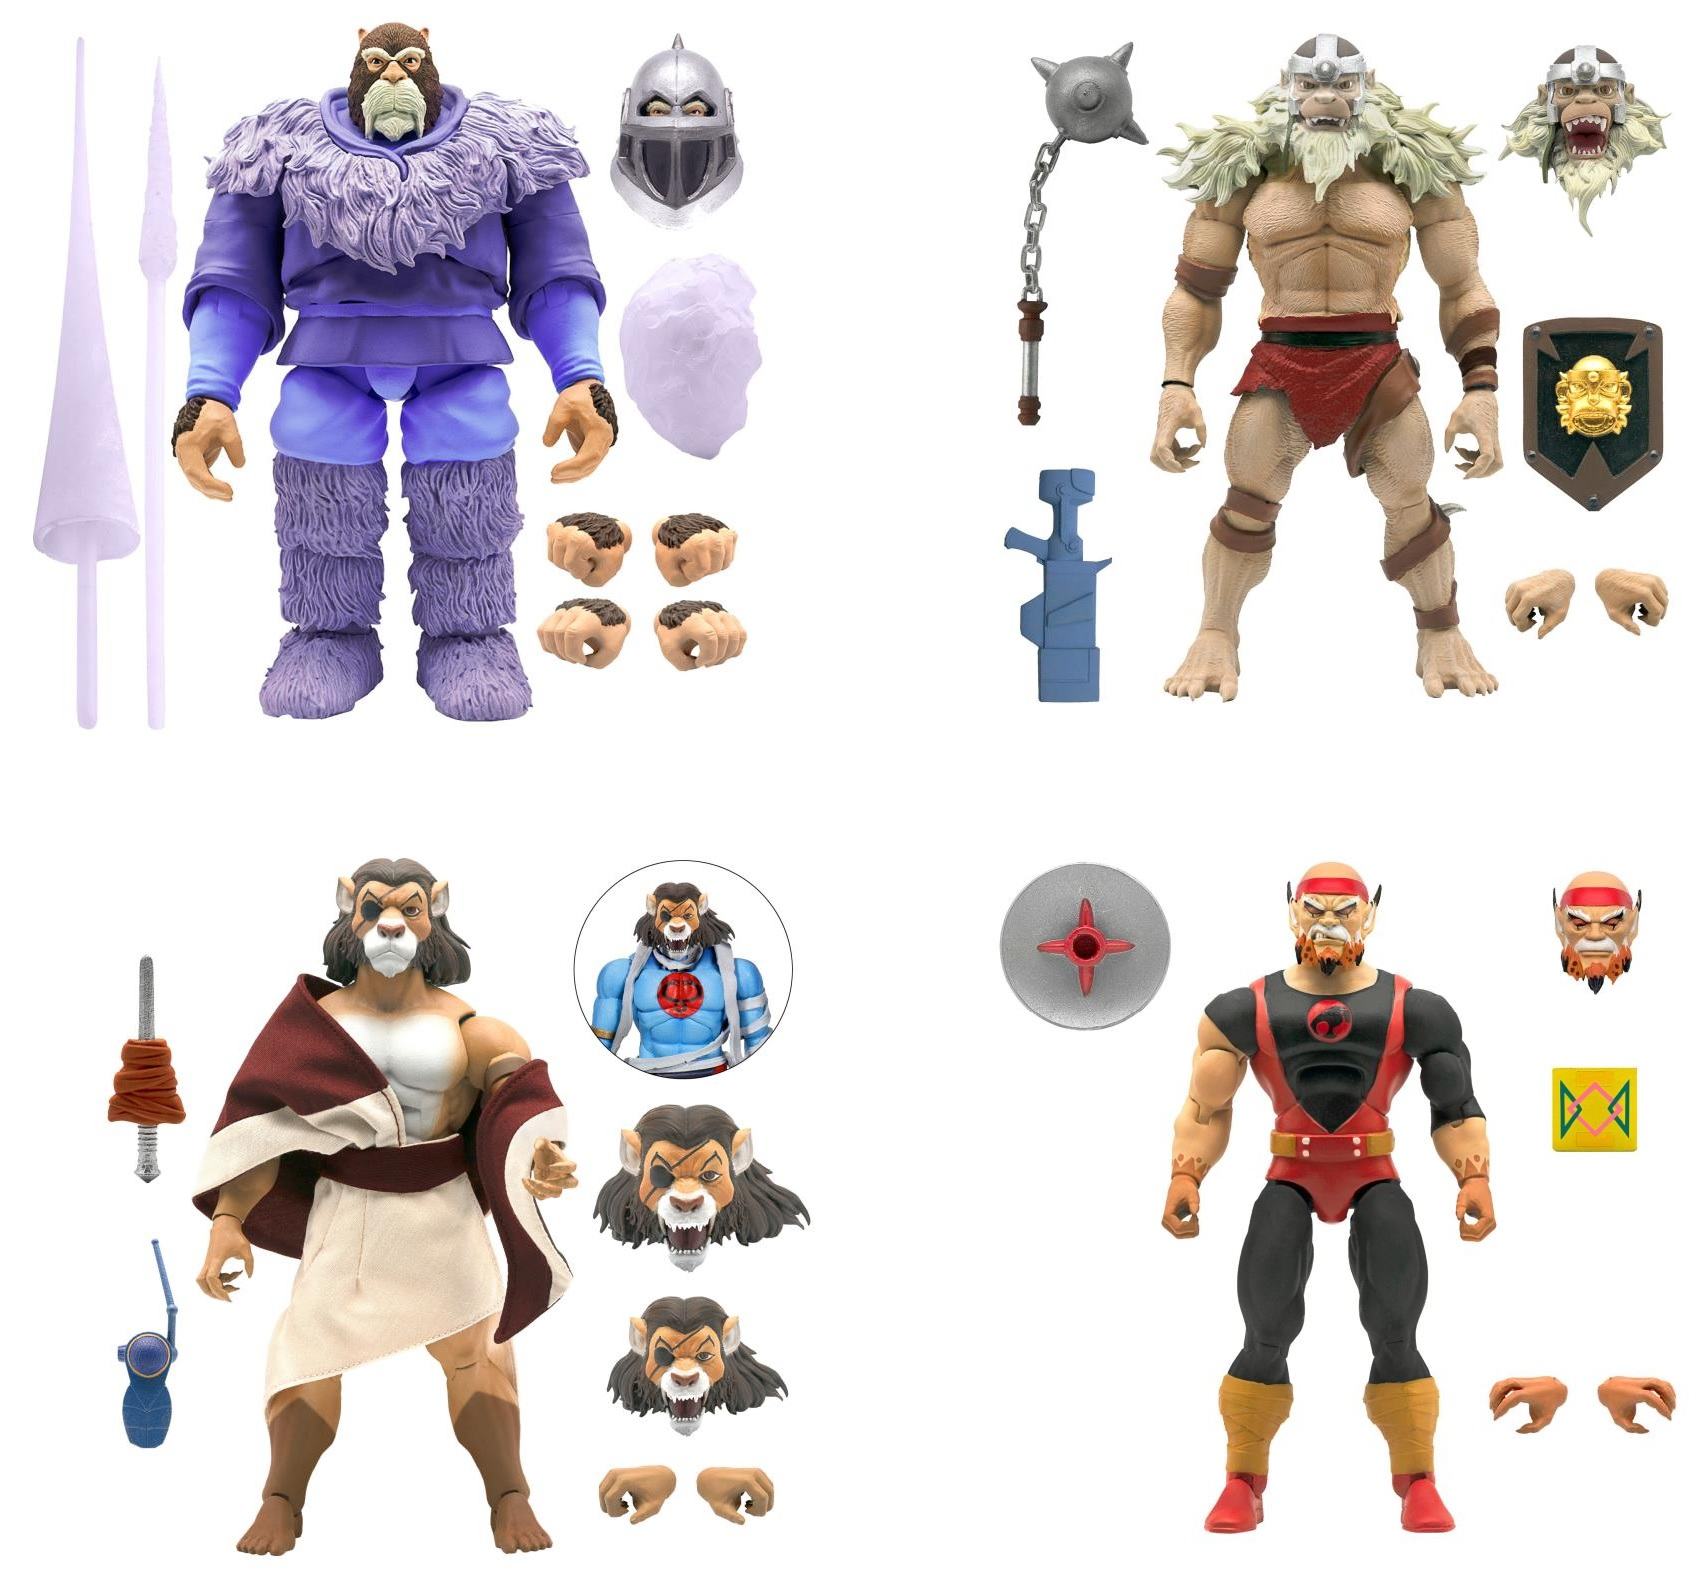 ThunderCats Ultimates Wave 4 (SET OF 4) 7-Inch Action Figures